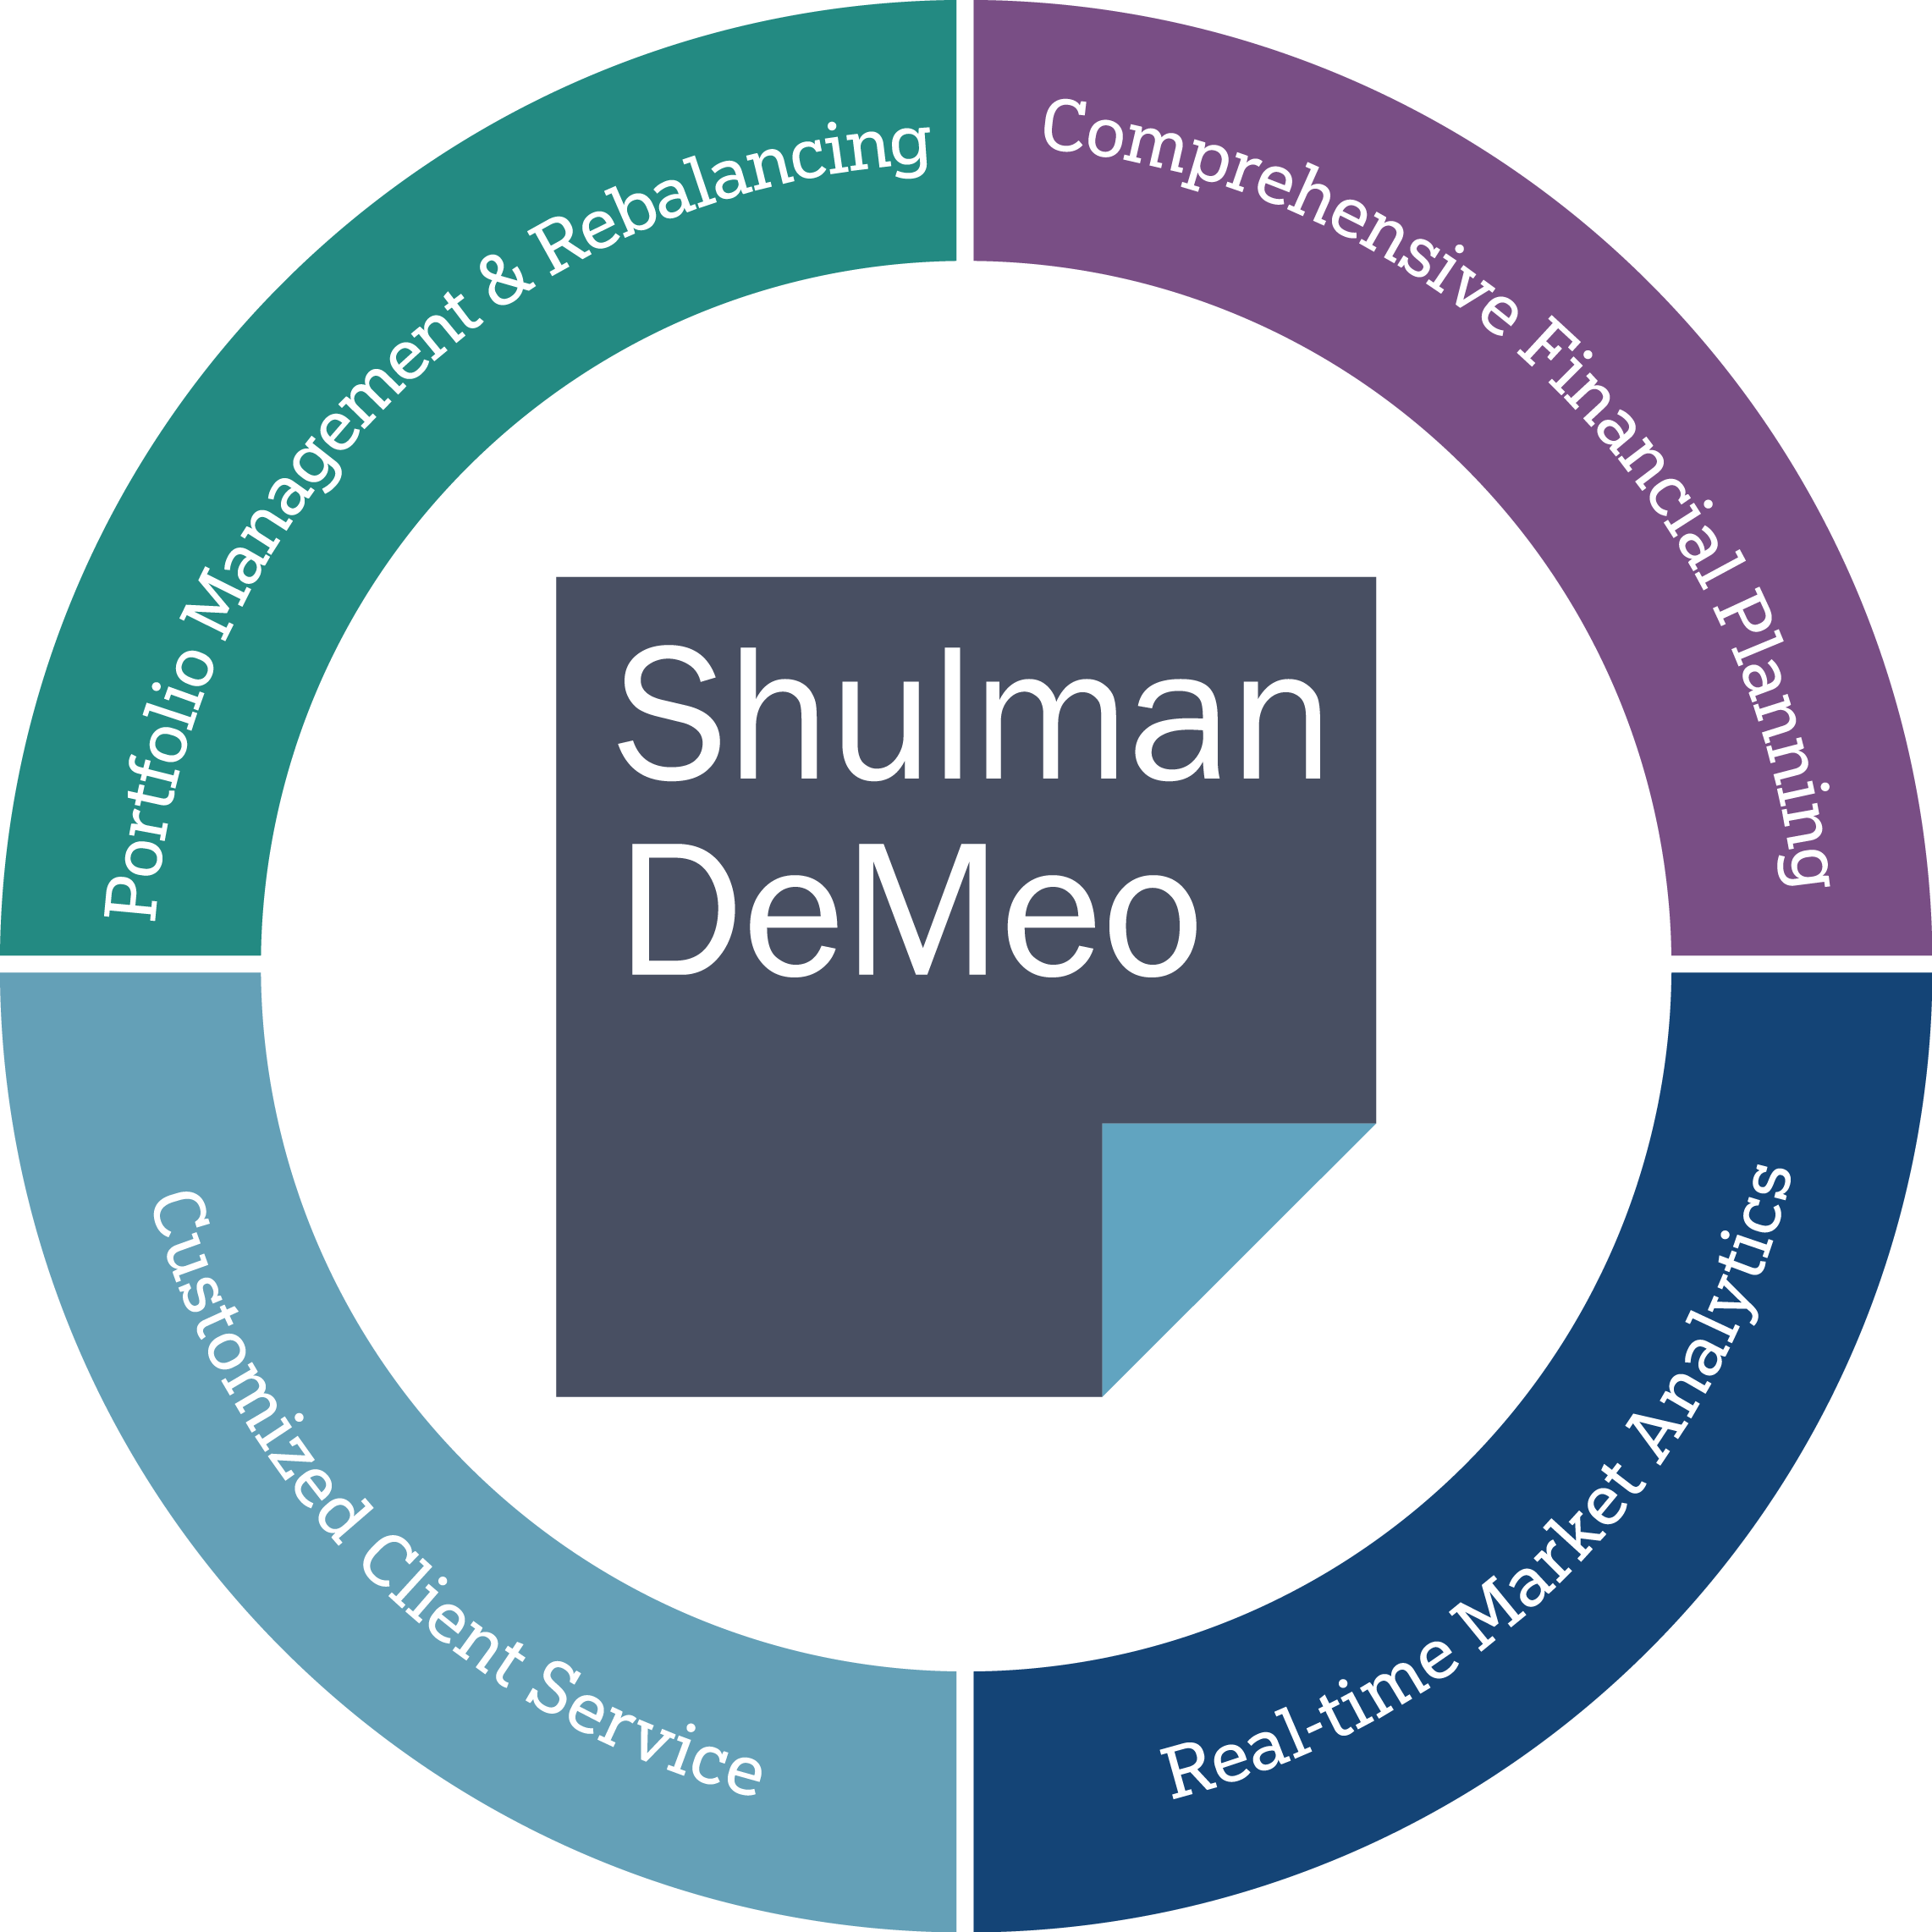 A chart describing the Shulman DeMeo advantage. They offer: portfolios management and rebalancing, comprehensive financial planning, real-time market analytics, and customized client services.